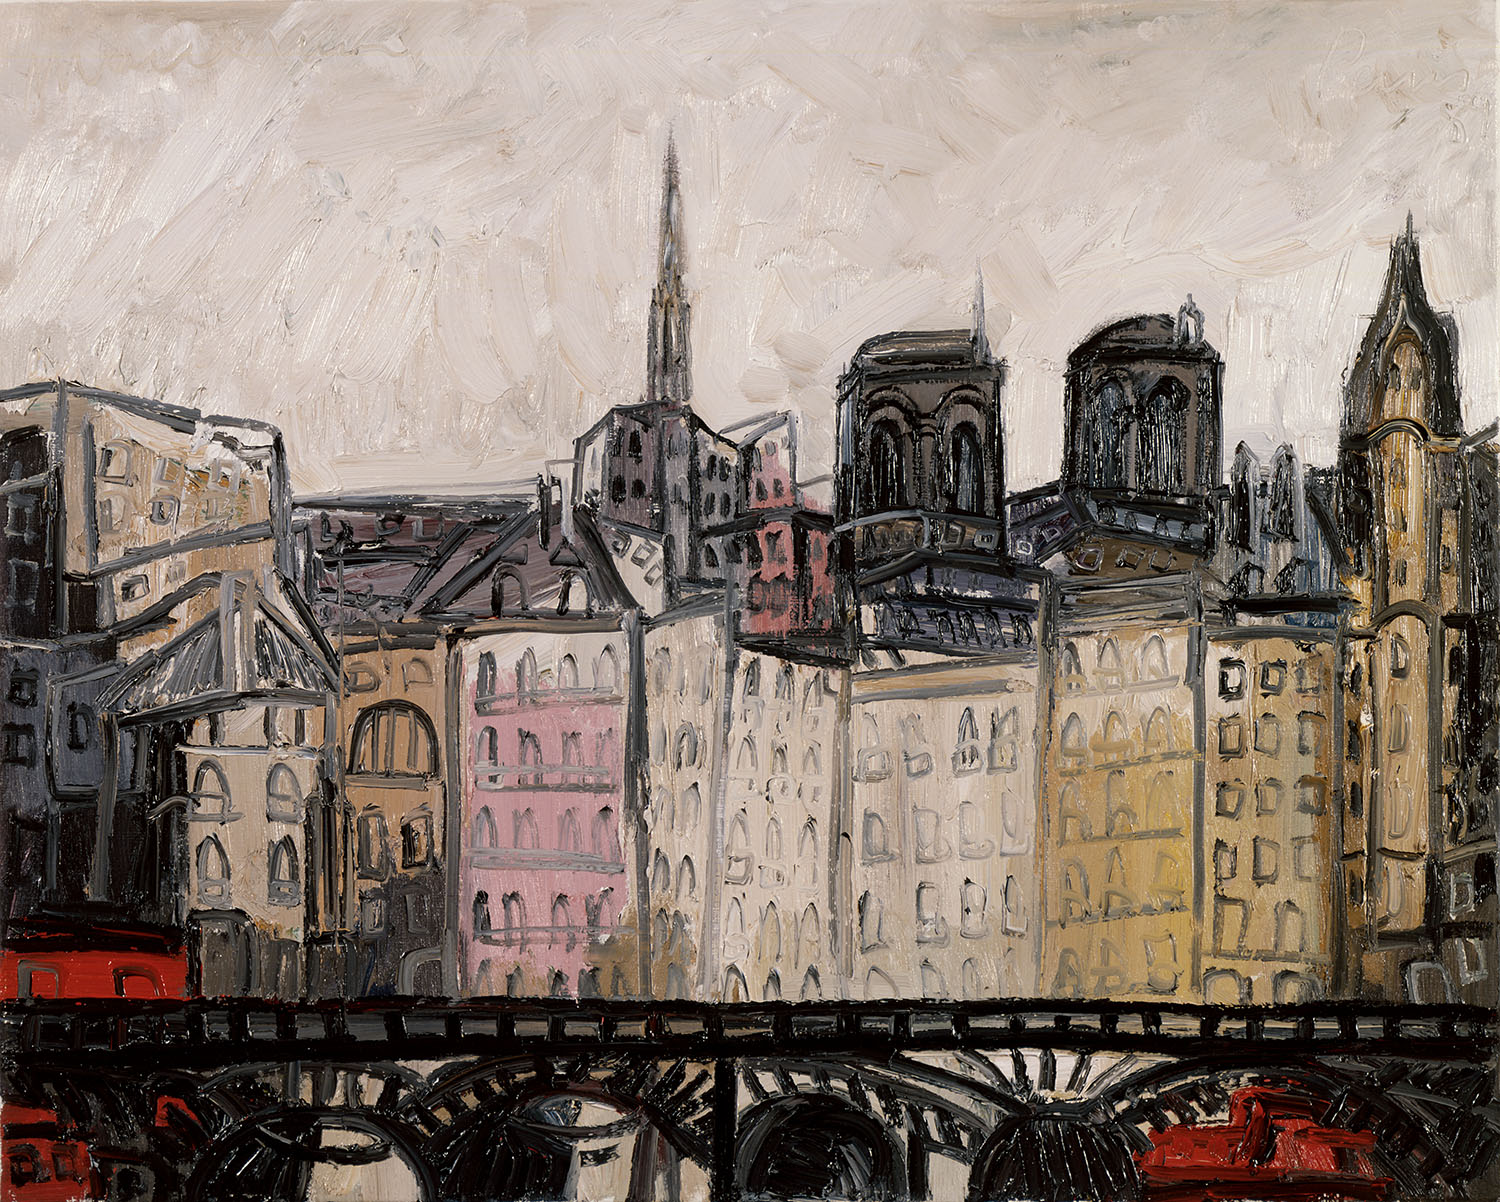 Paris, 1989, oil on canvas, cm 73 x 92